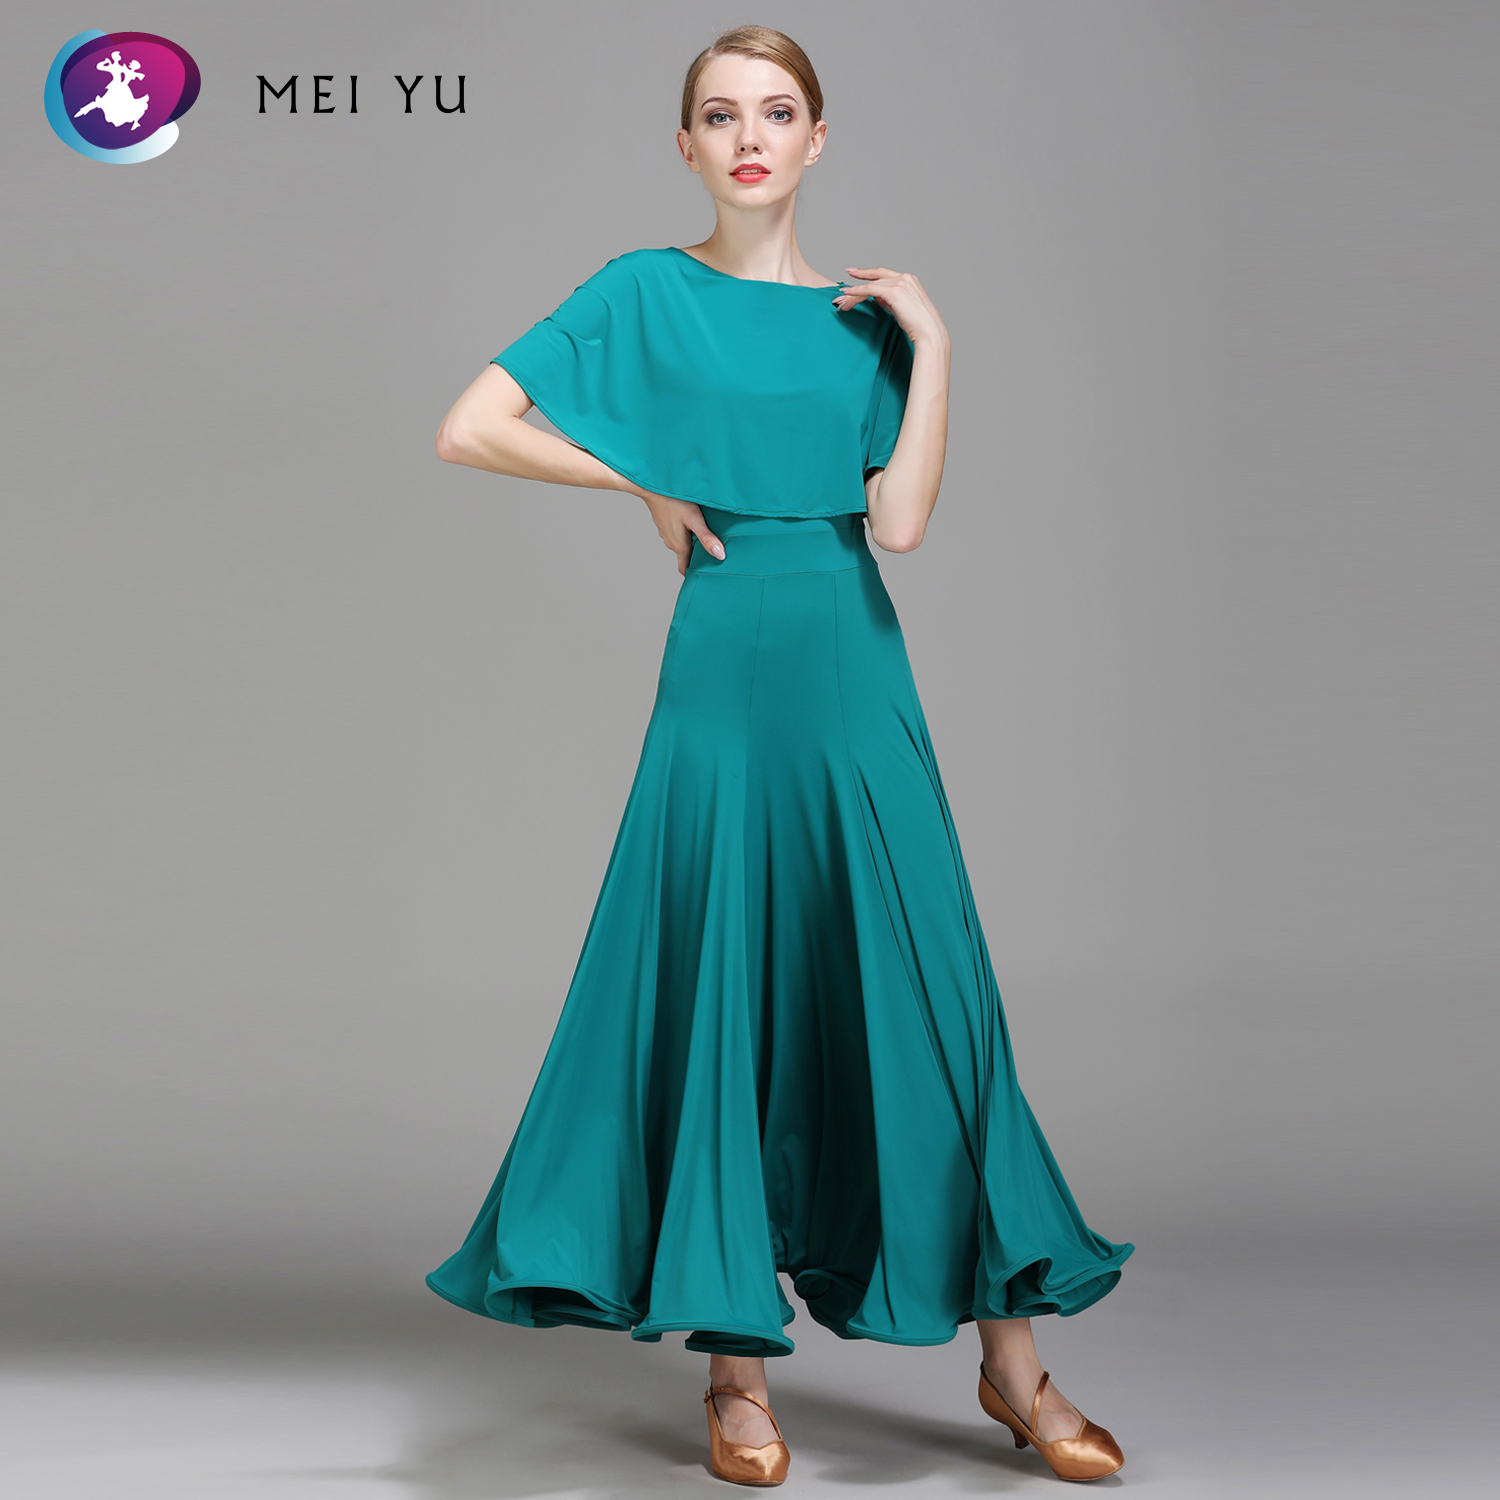 2018 New 1857 Modern Dance Costume Women Lady Adult Waltzing Tango Ballroom Dance Competition Costume Dress Evening Party Dress Novelty & Special Use